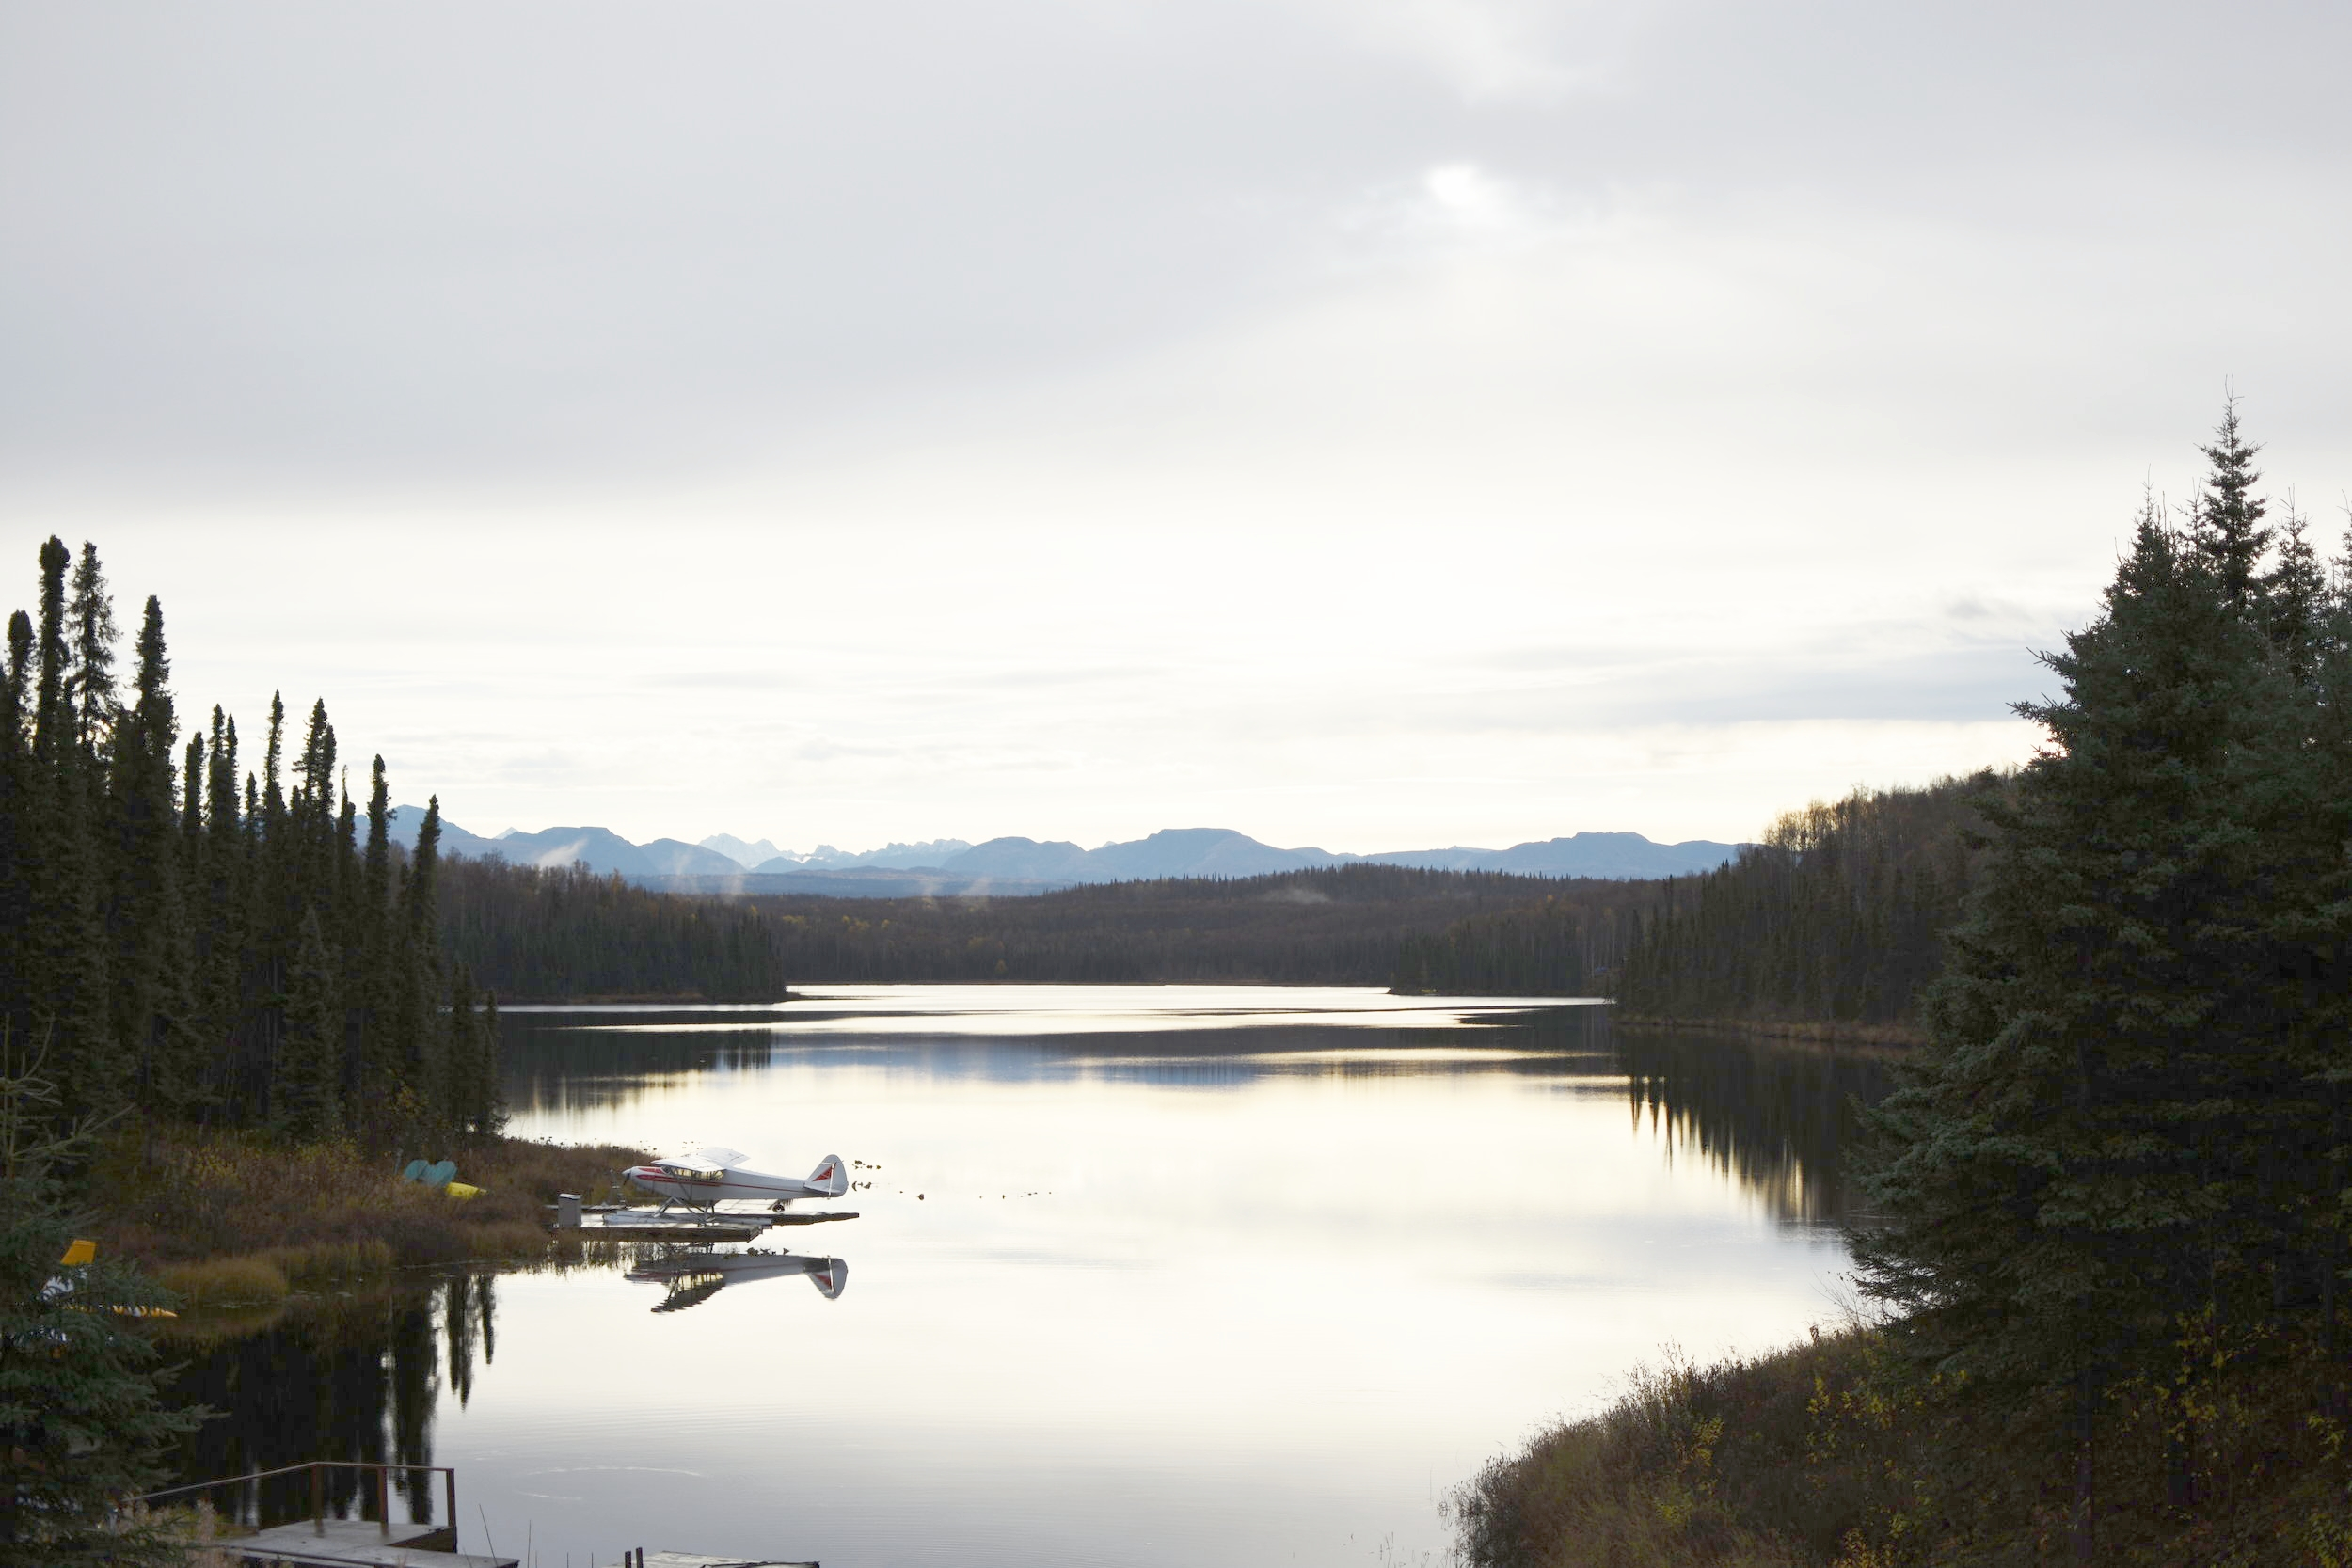 A beautiful morning near Talkeetna, AK.